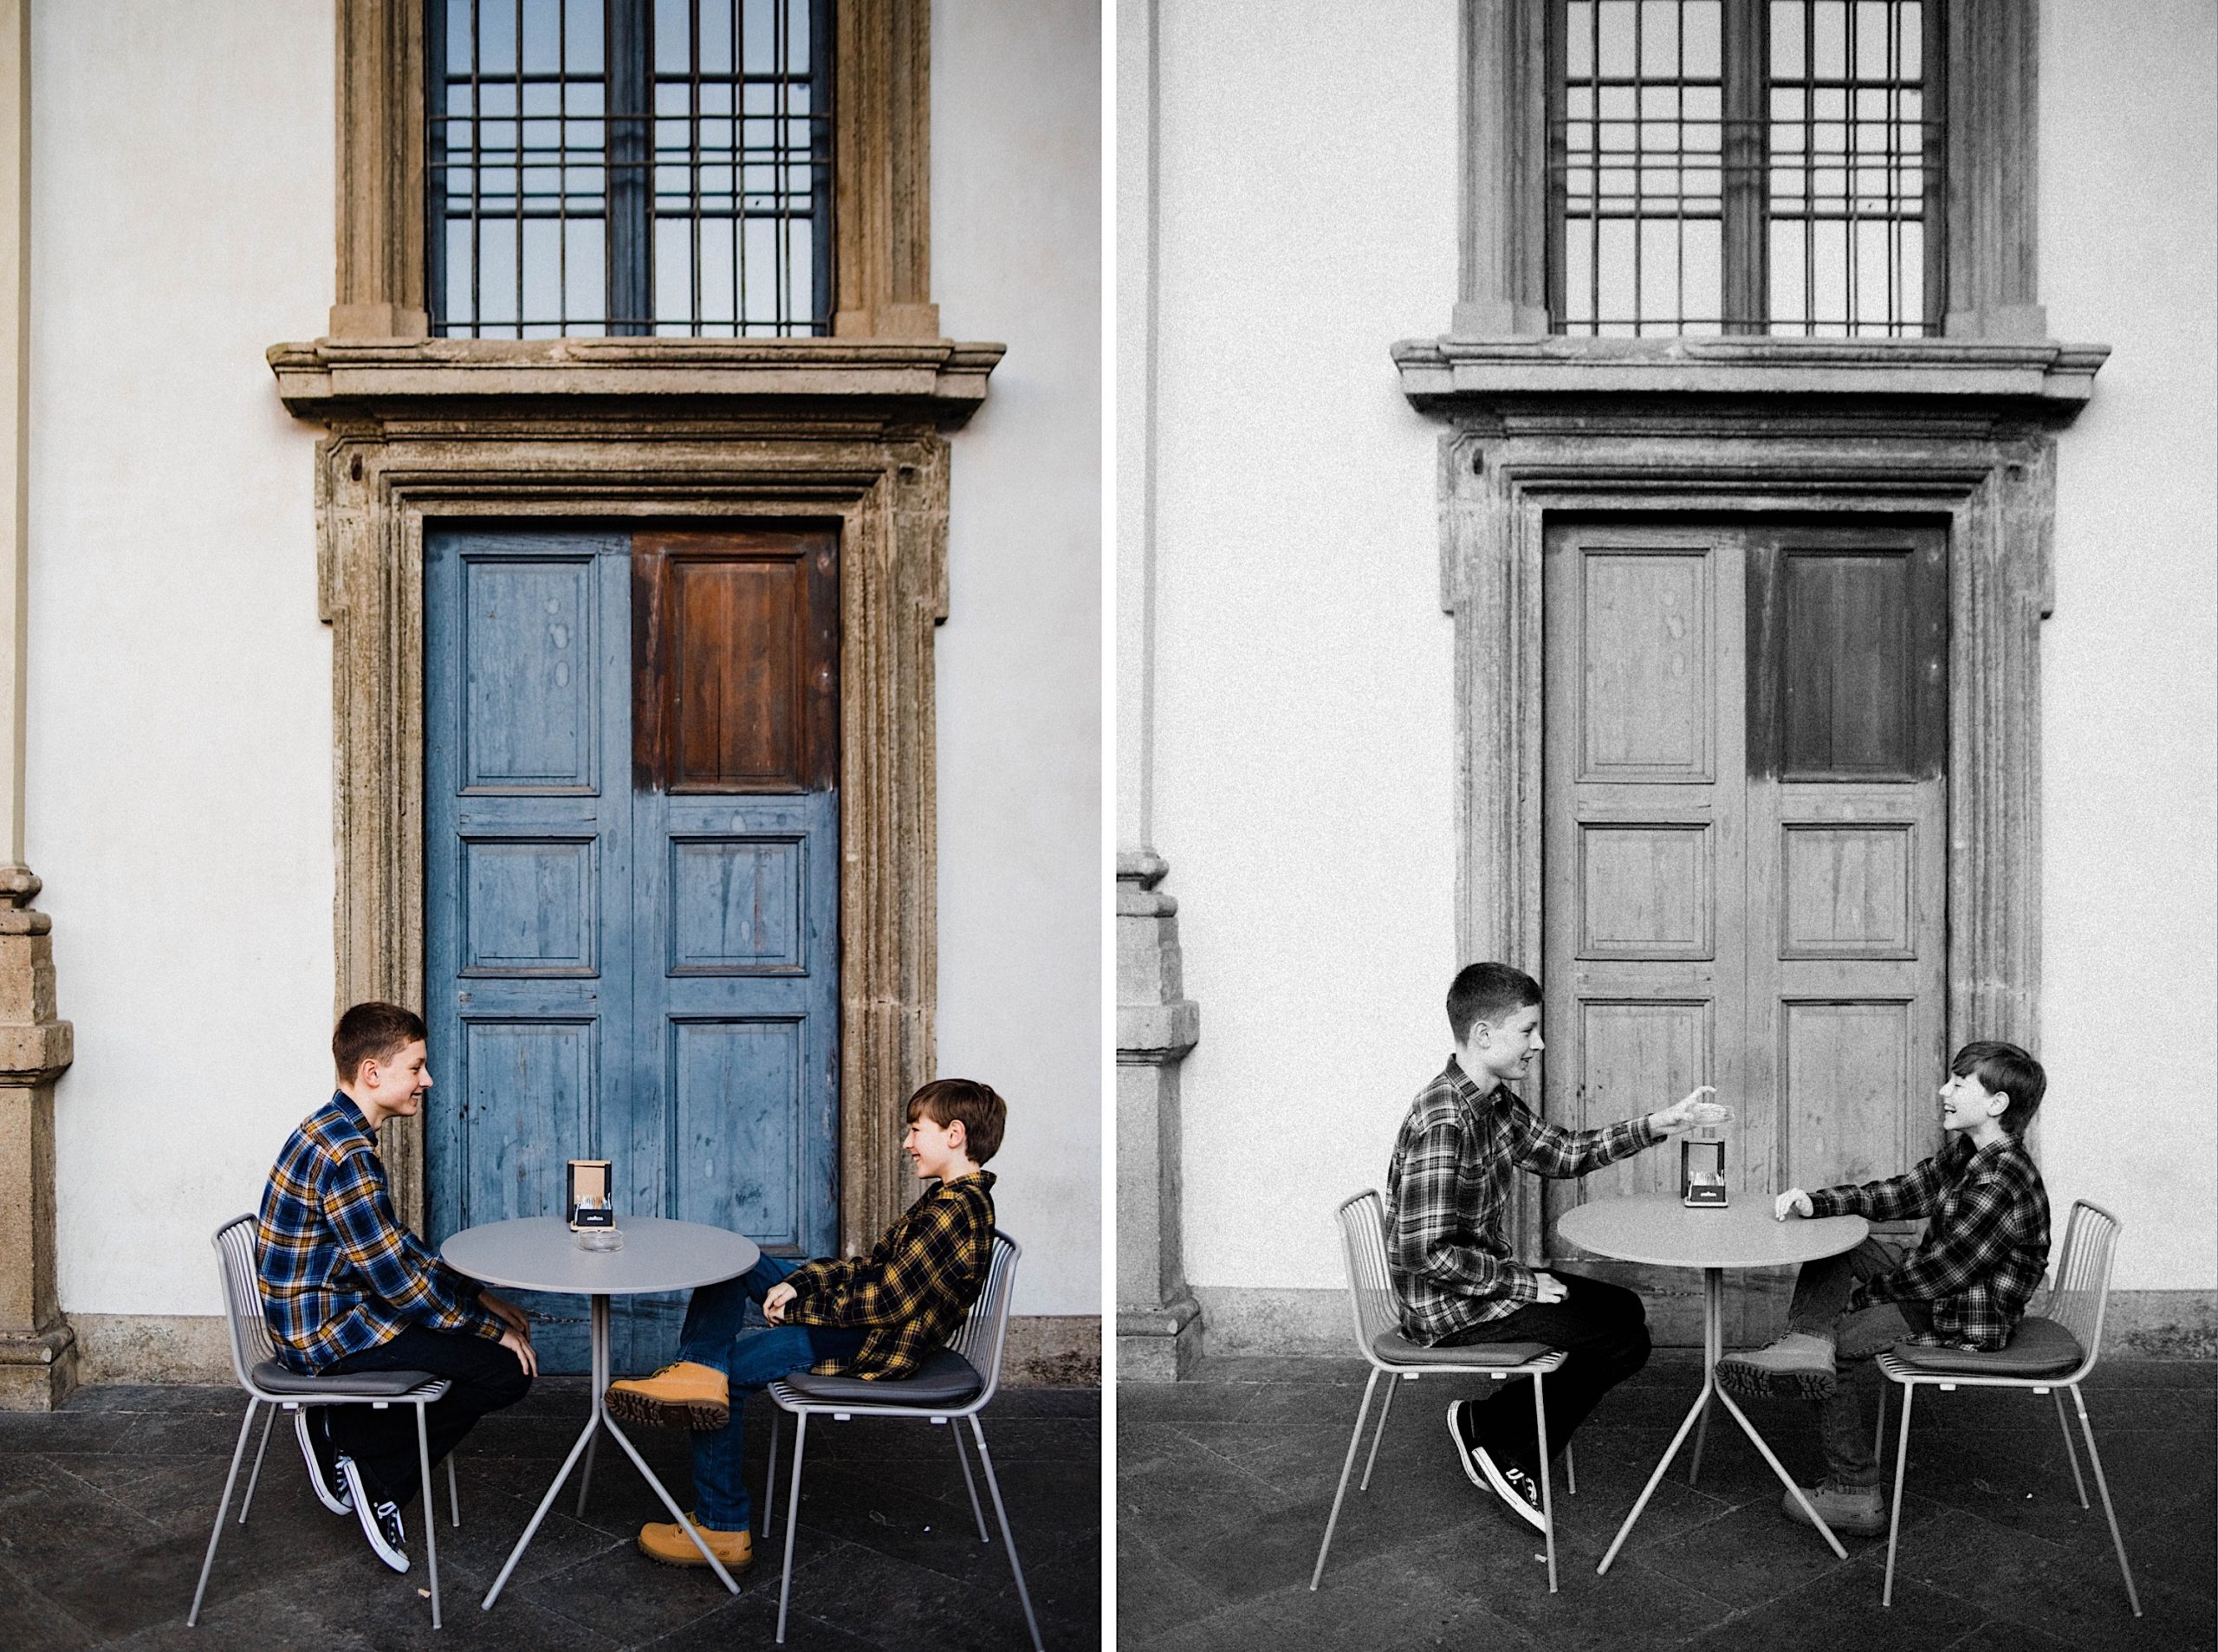 Two portrait photos of a two teenage brothers sitting a cafe table, joking together.